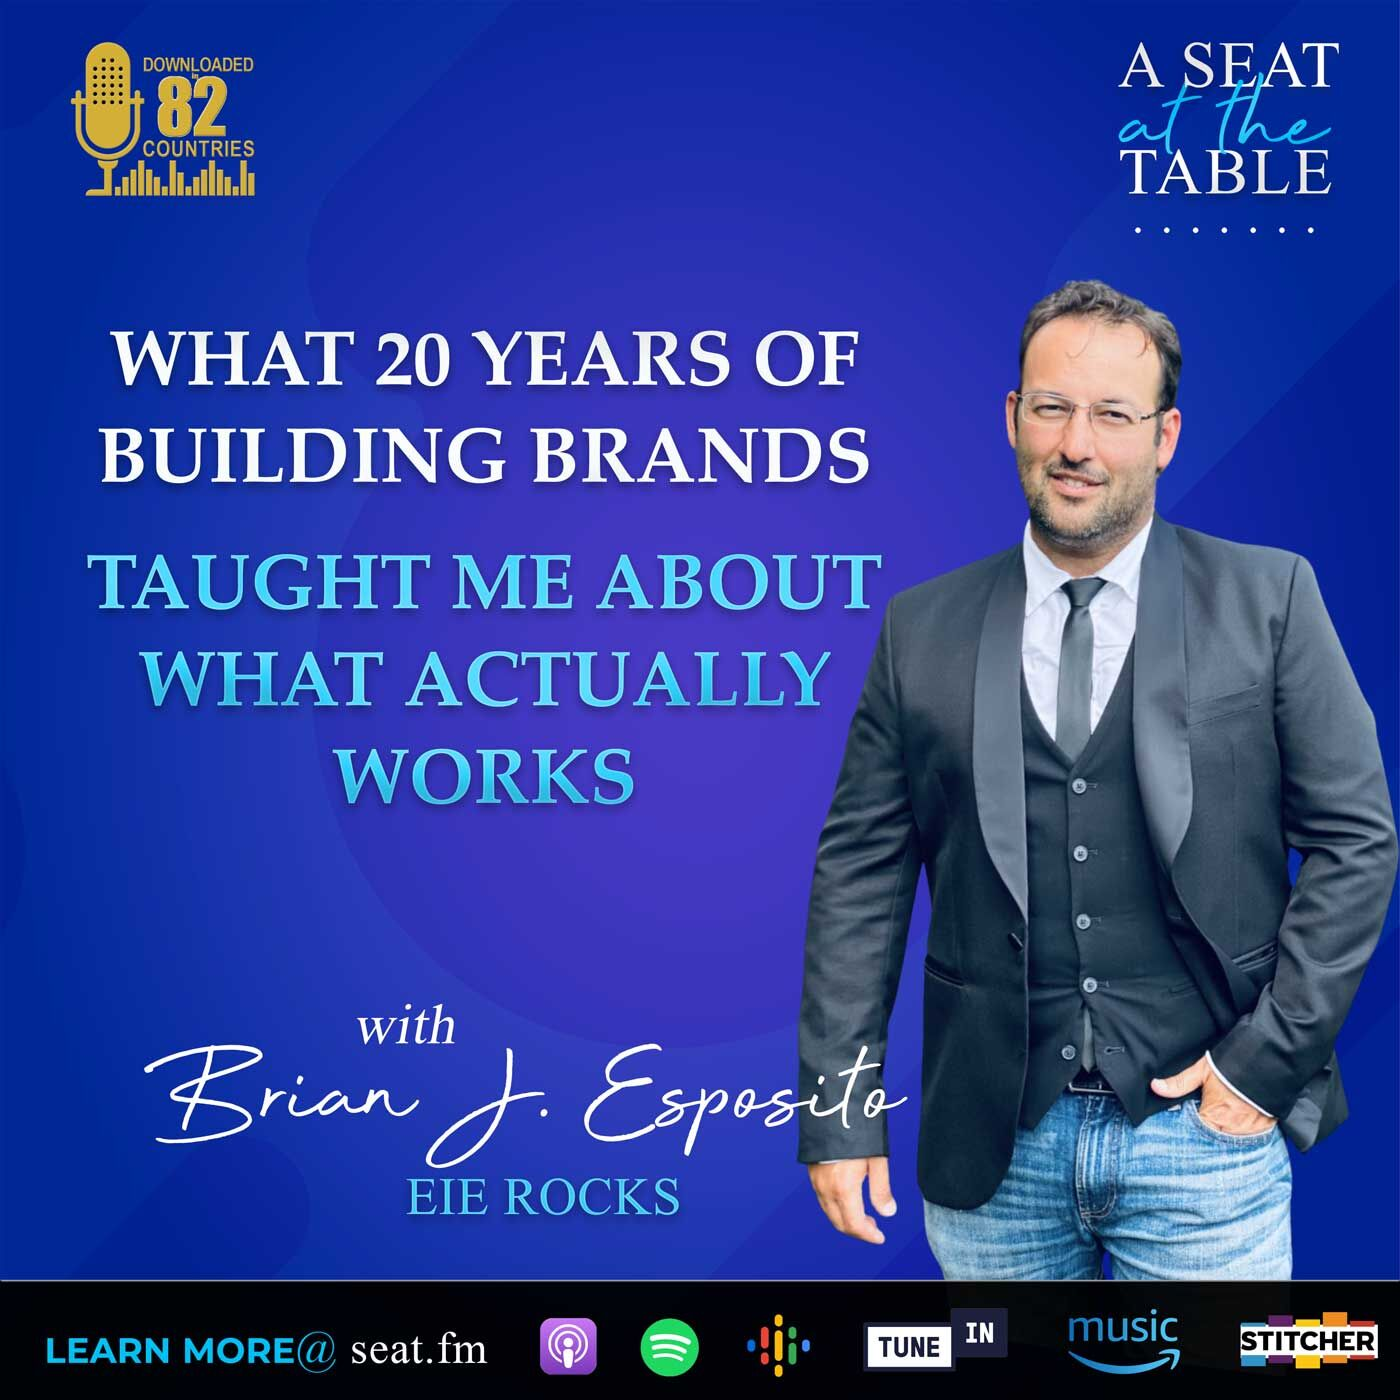 What 20 Years of Building Brands Taught Me About What Actually Works